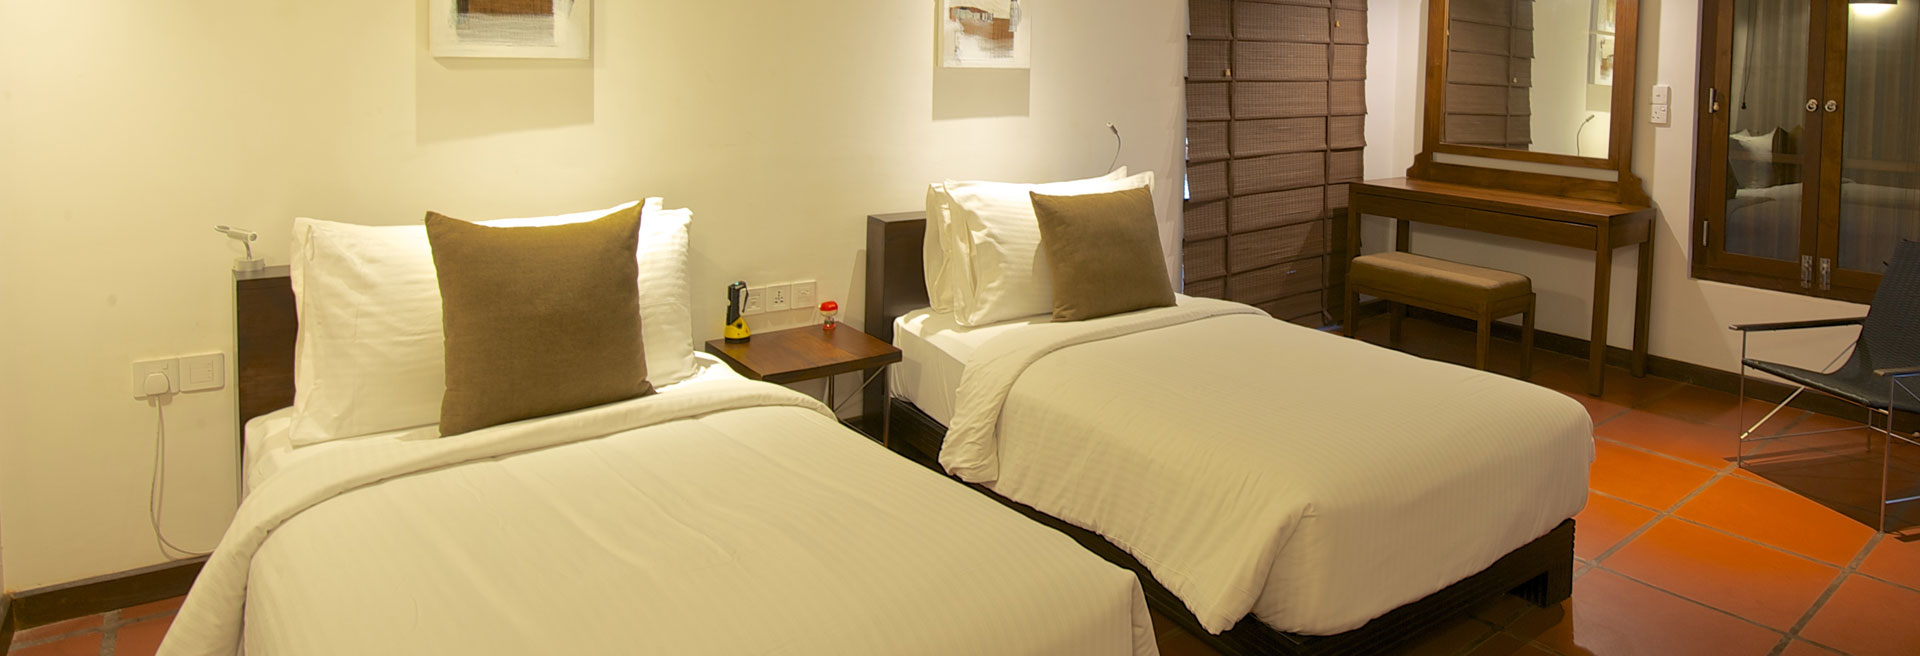 Modern accommodation with queen size bed